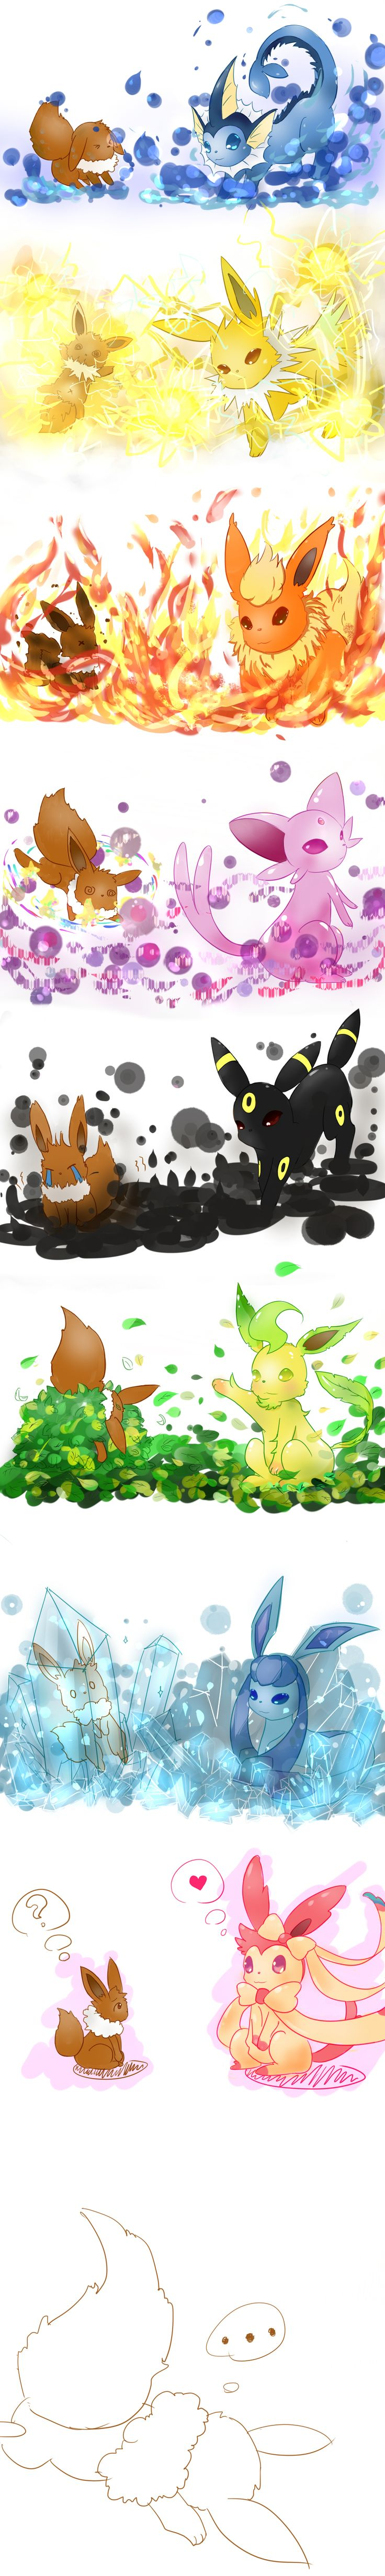 Eevee exposed to the elements xD Poor thing. There is vaporeon, jolteon, flareon, espeon, umbreon, leafeon, glaceon, and sylveon.